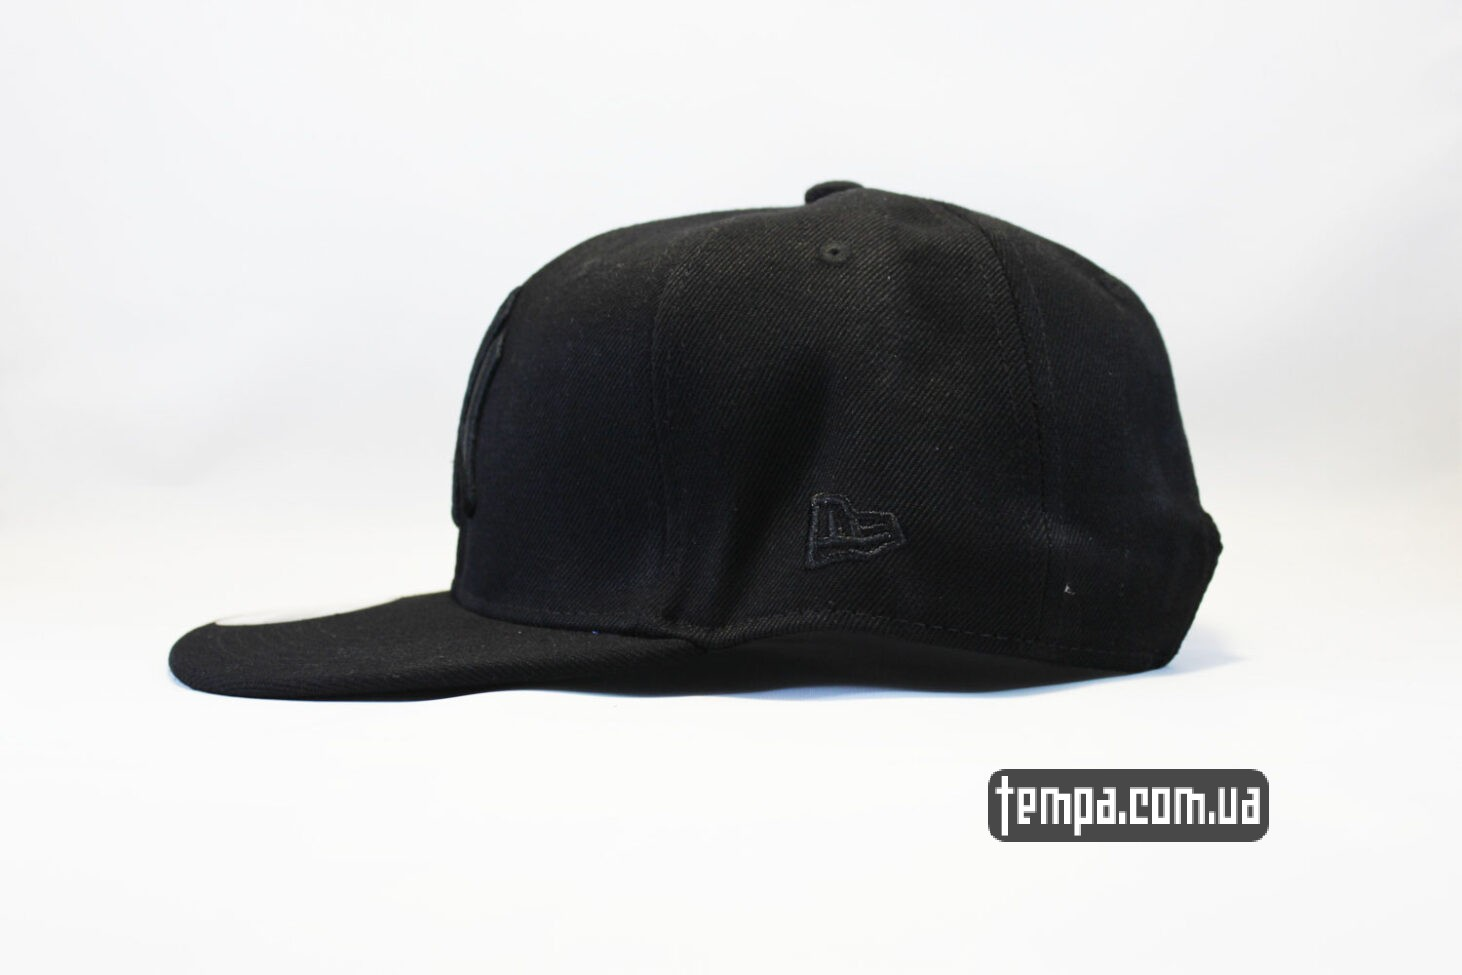 янки янкис кепка Snapback New Era NYC New York черная на черном black